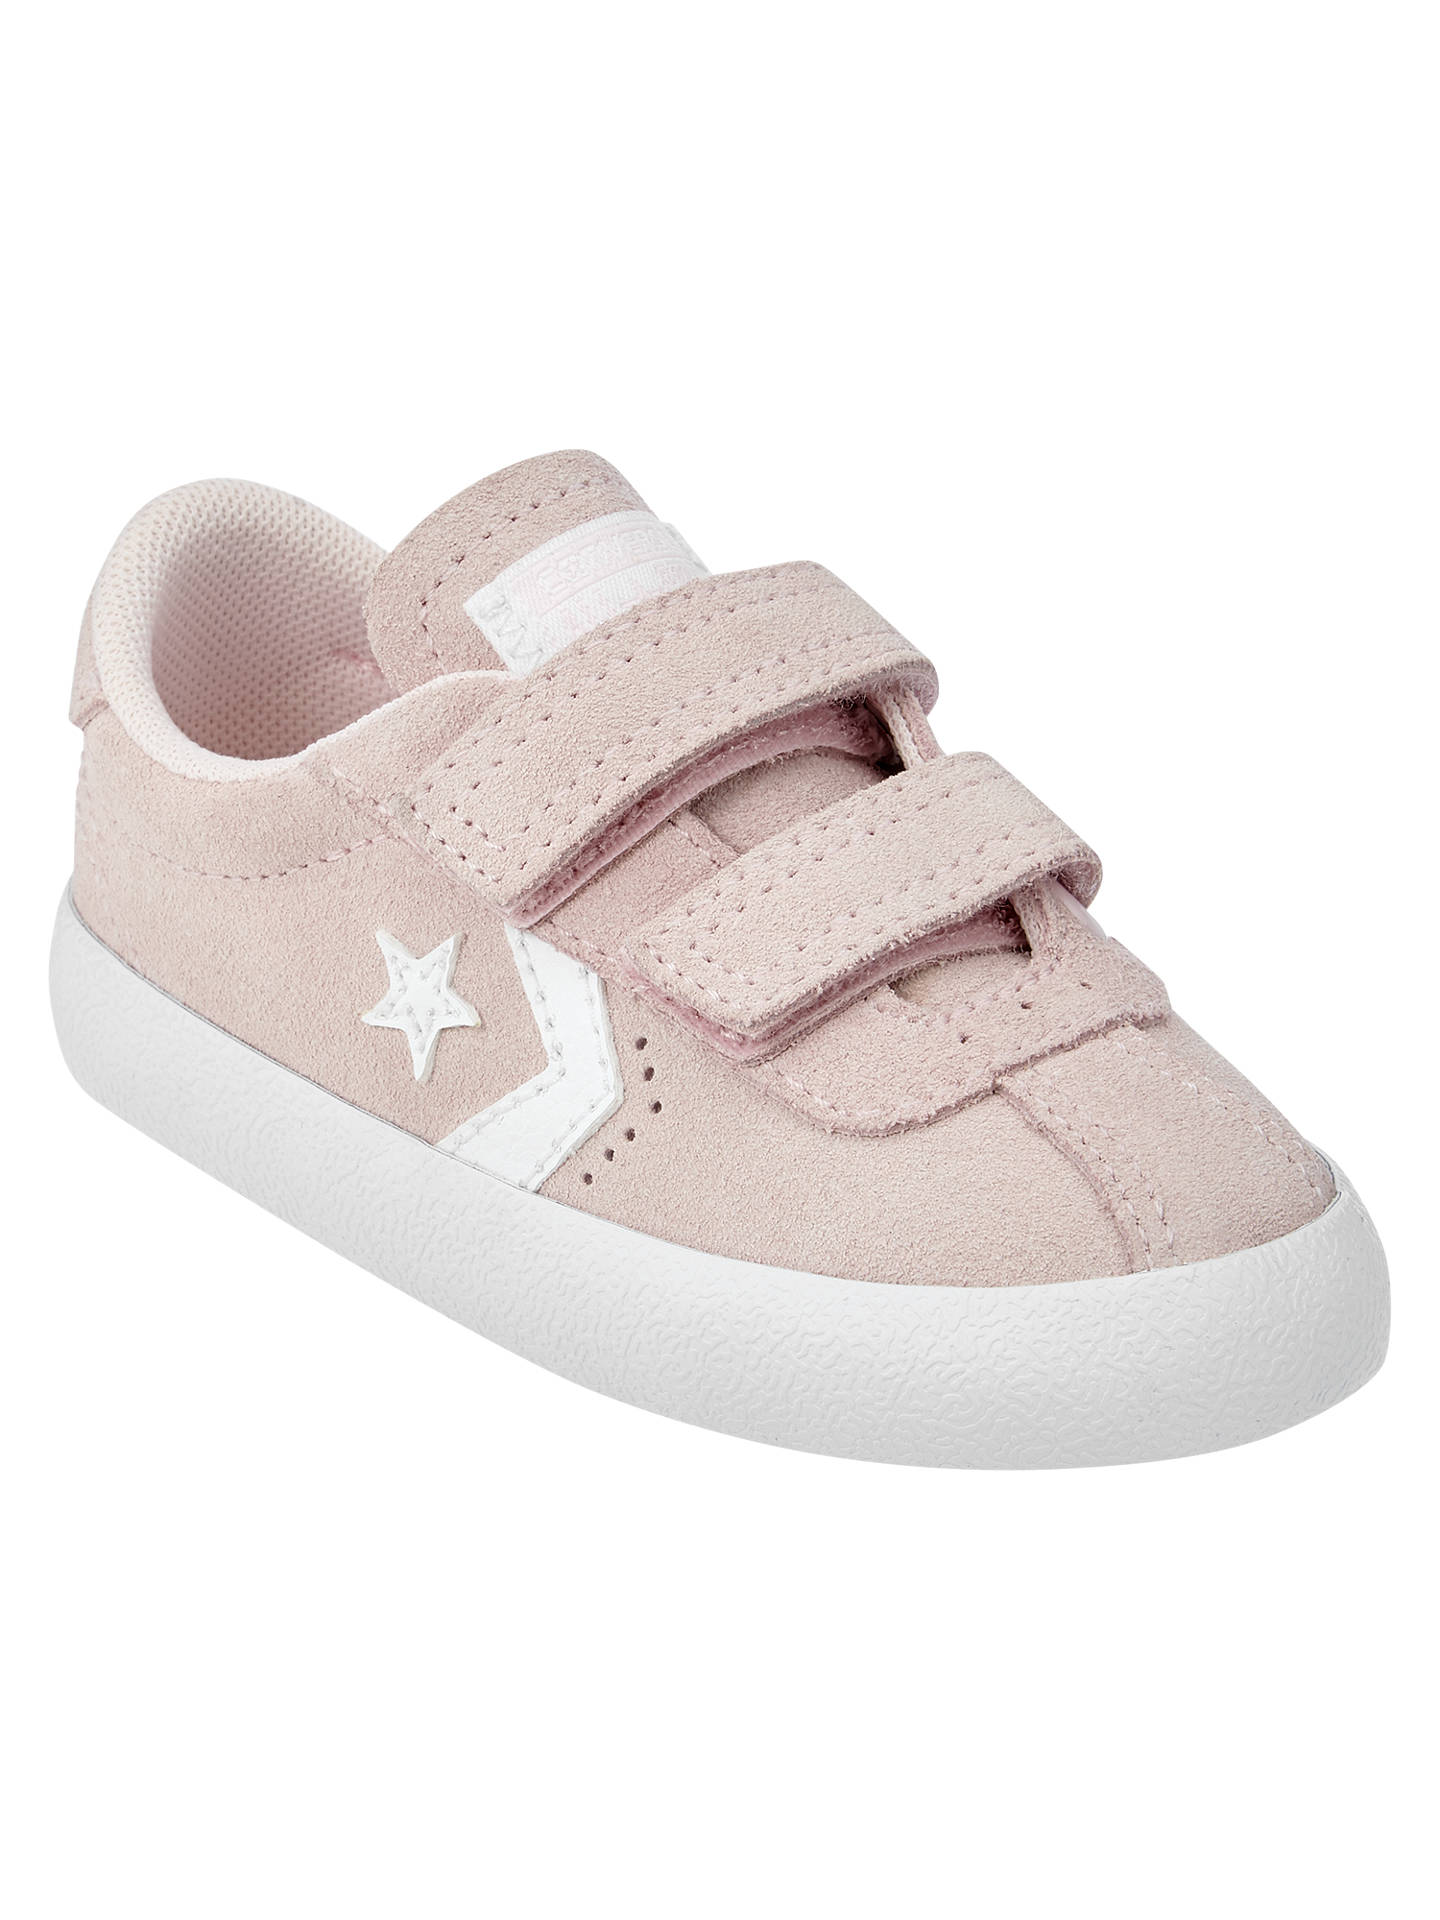 4cbb0afbc681 Buy Converse Children s Rip-Tape Breakpoint Trainers